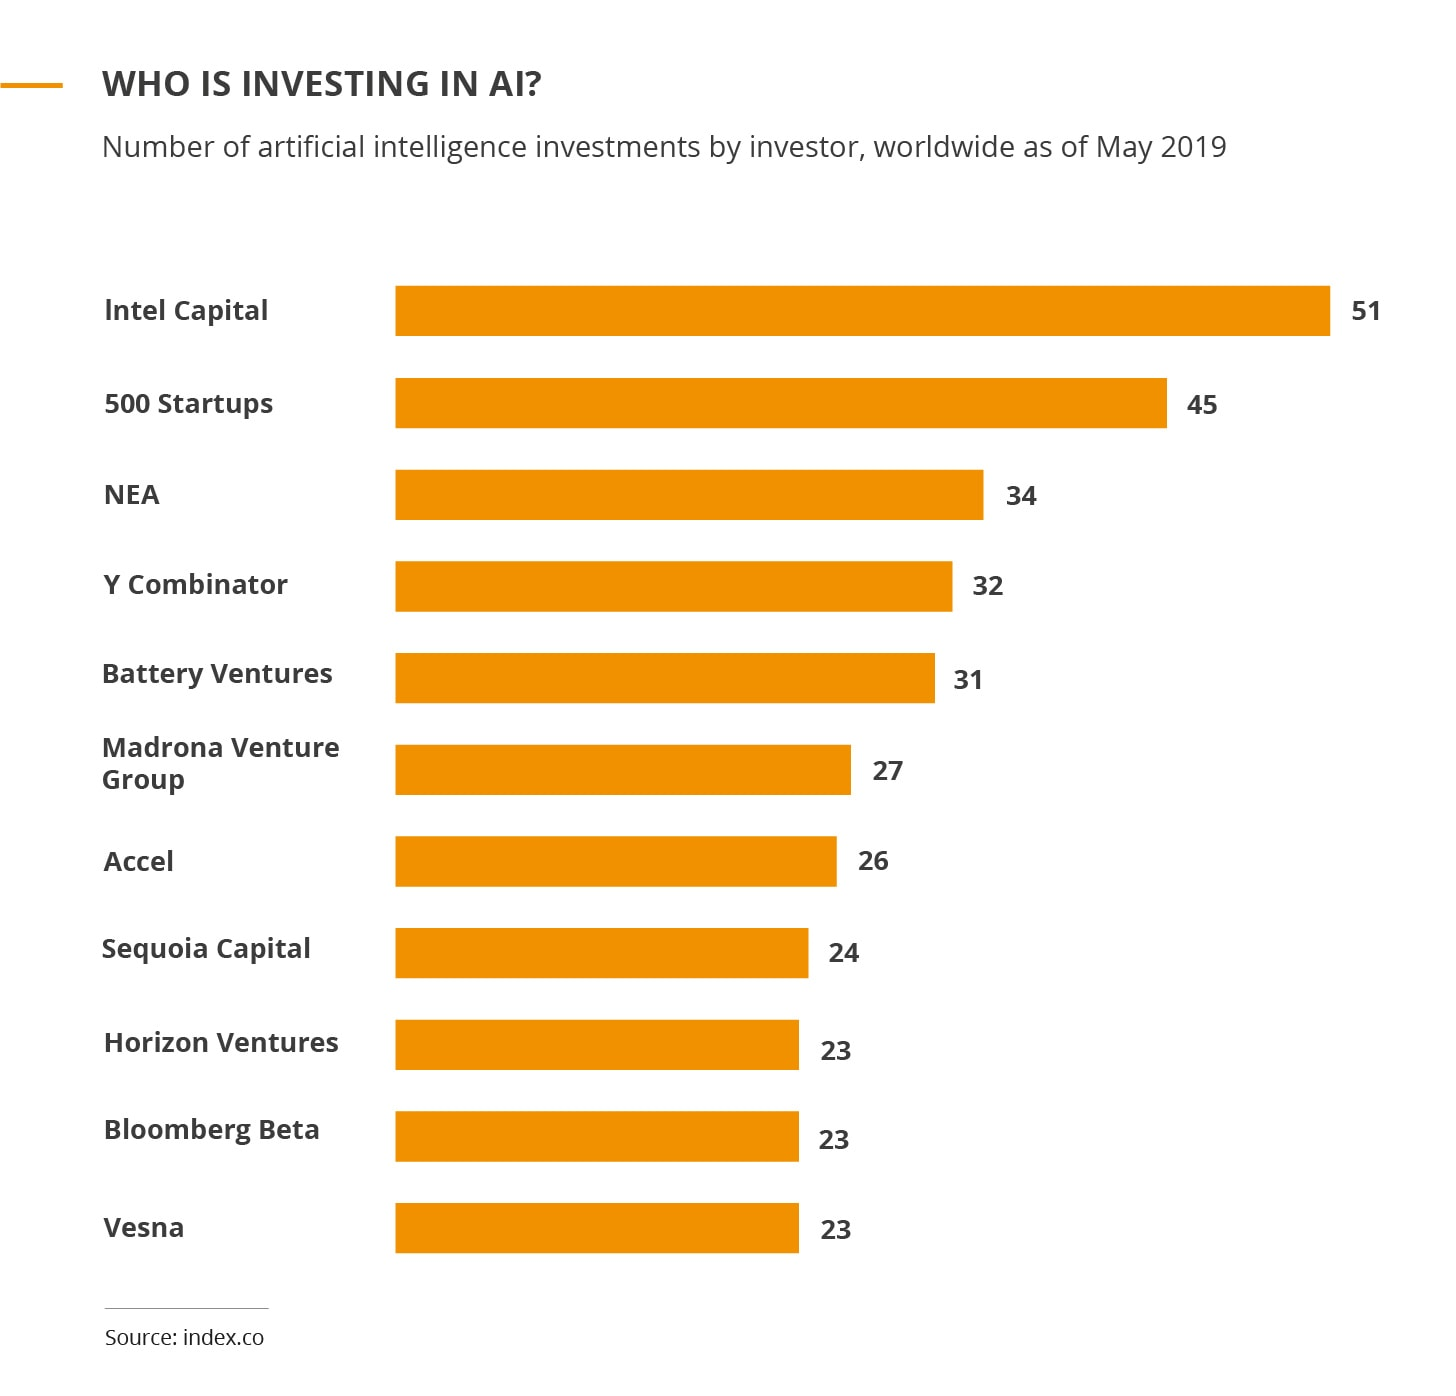 Who is investing in A.I.